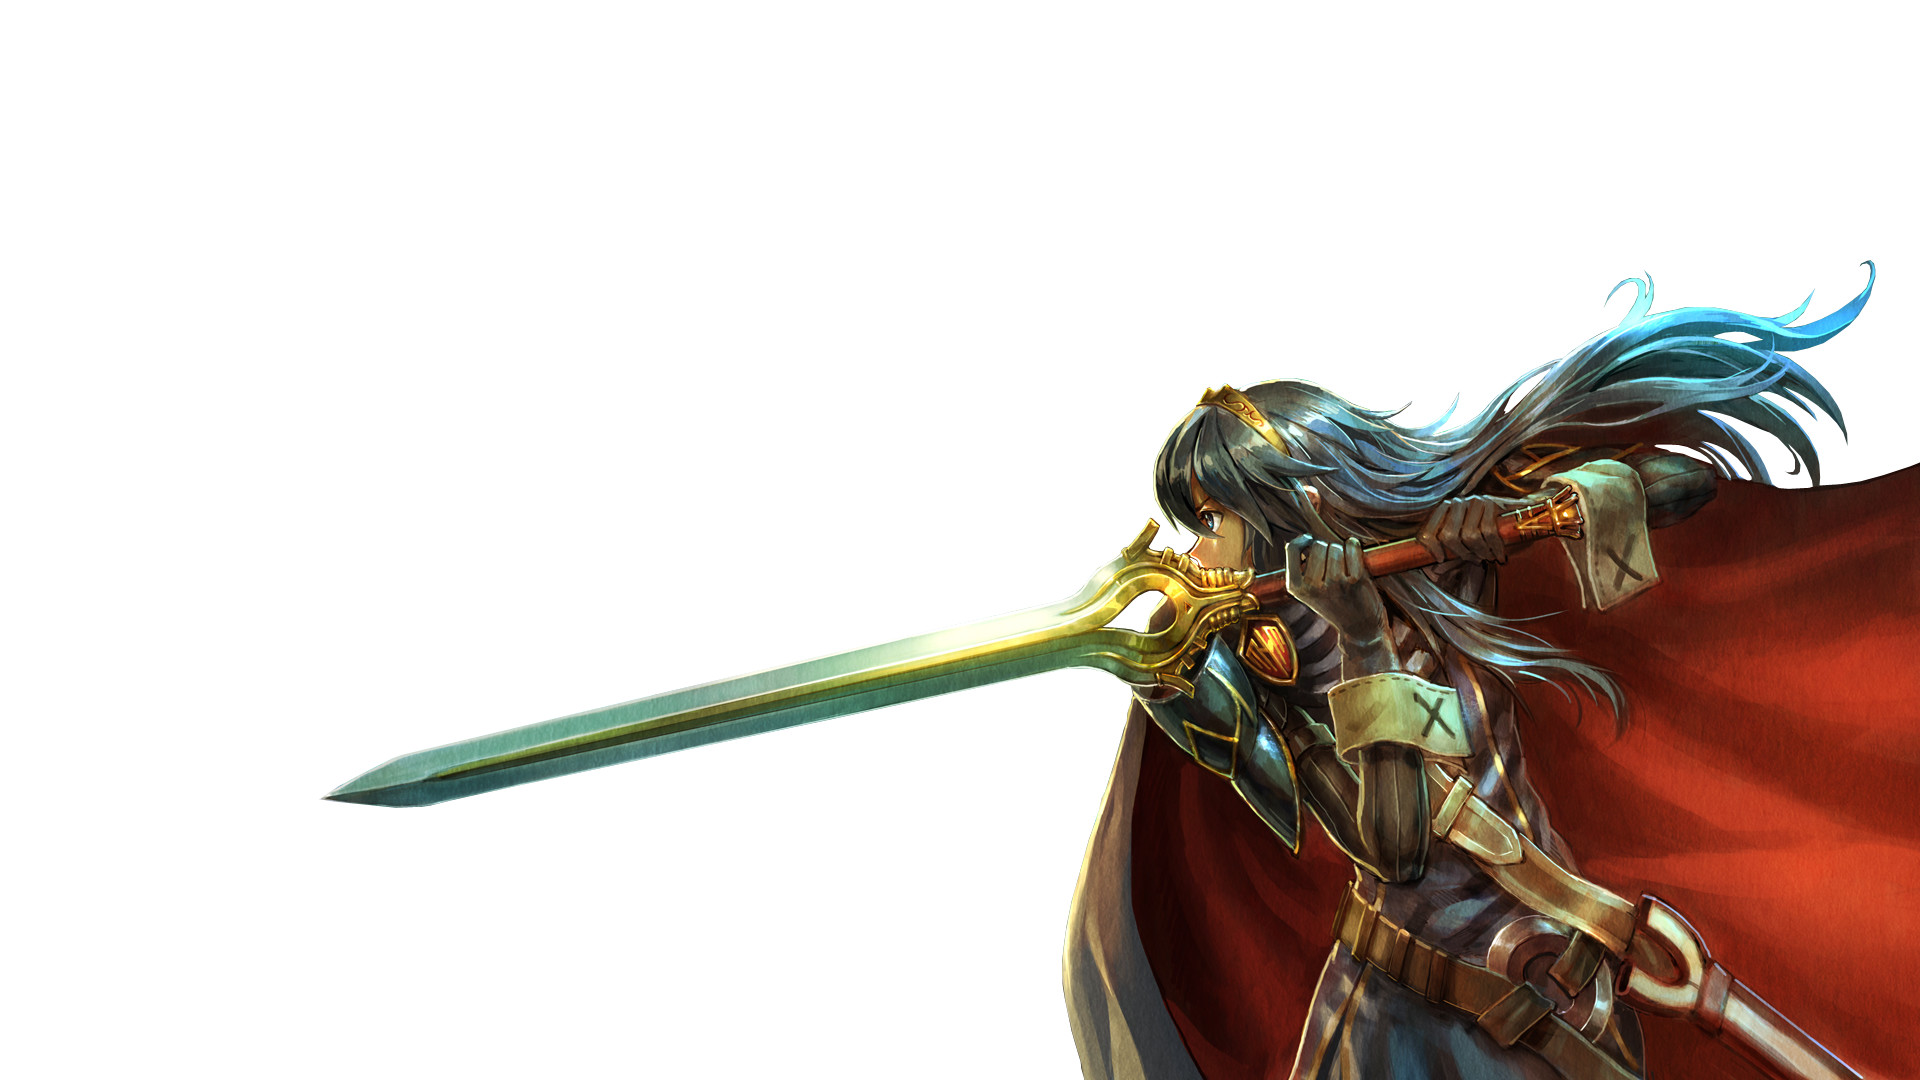 Roy Fire Emblem Wallpaper 76 Images